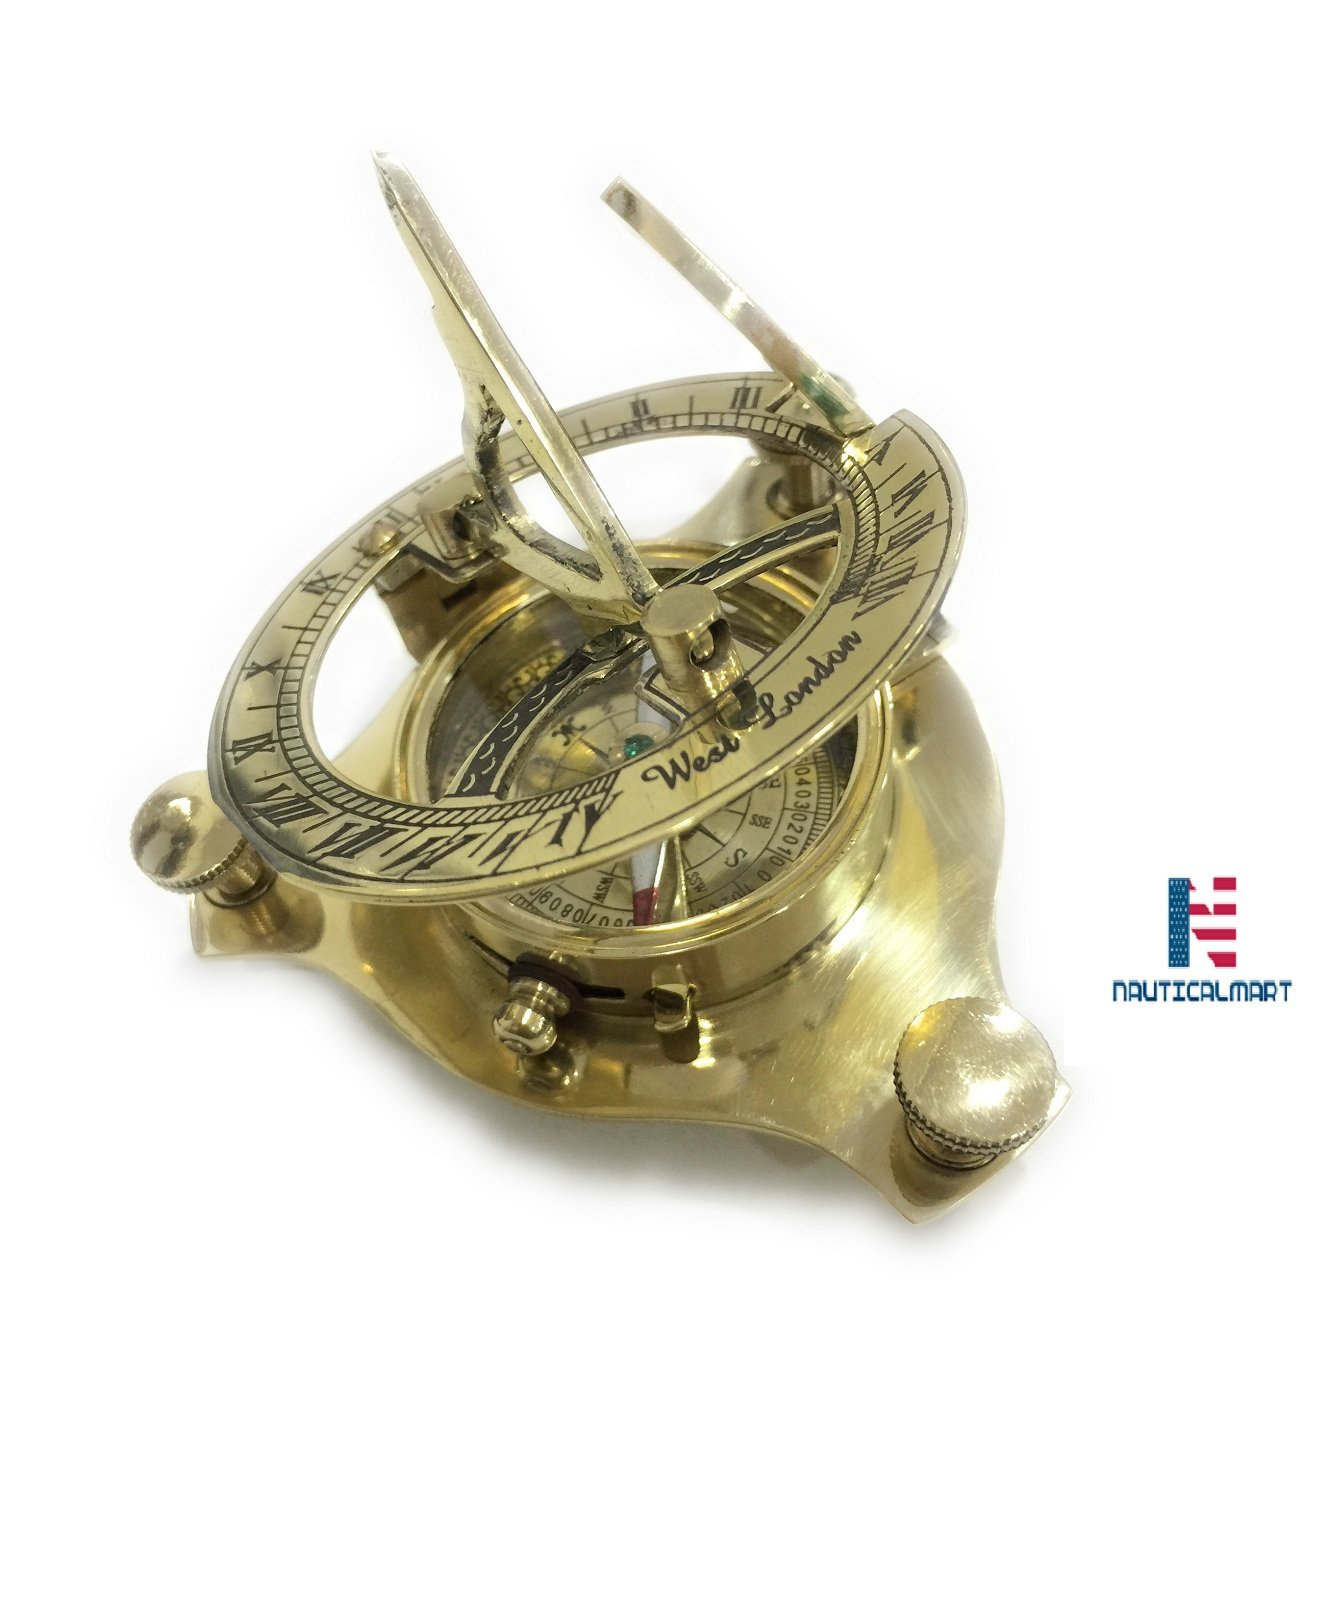 NM031890A Brass Sundial Compass - Case Pack of 16